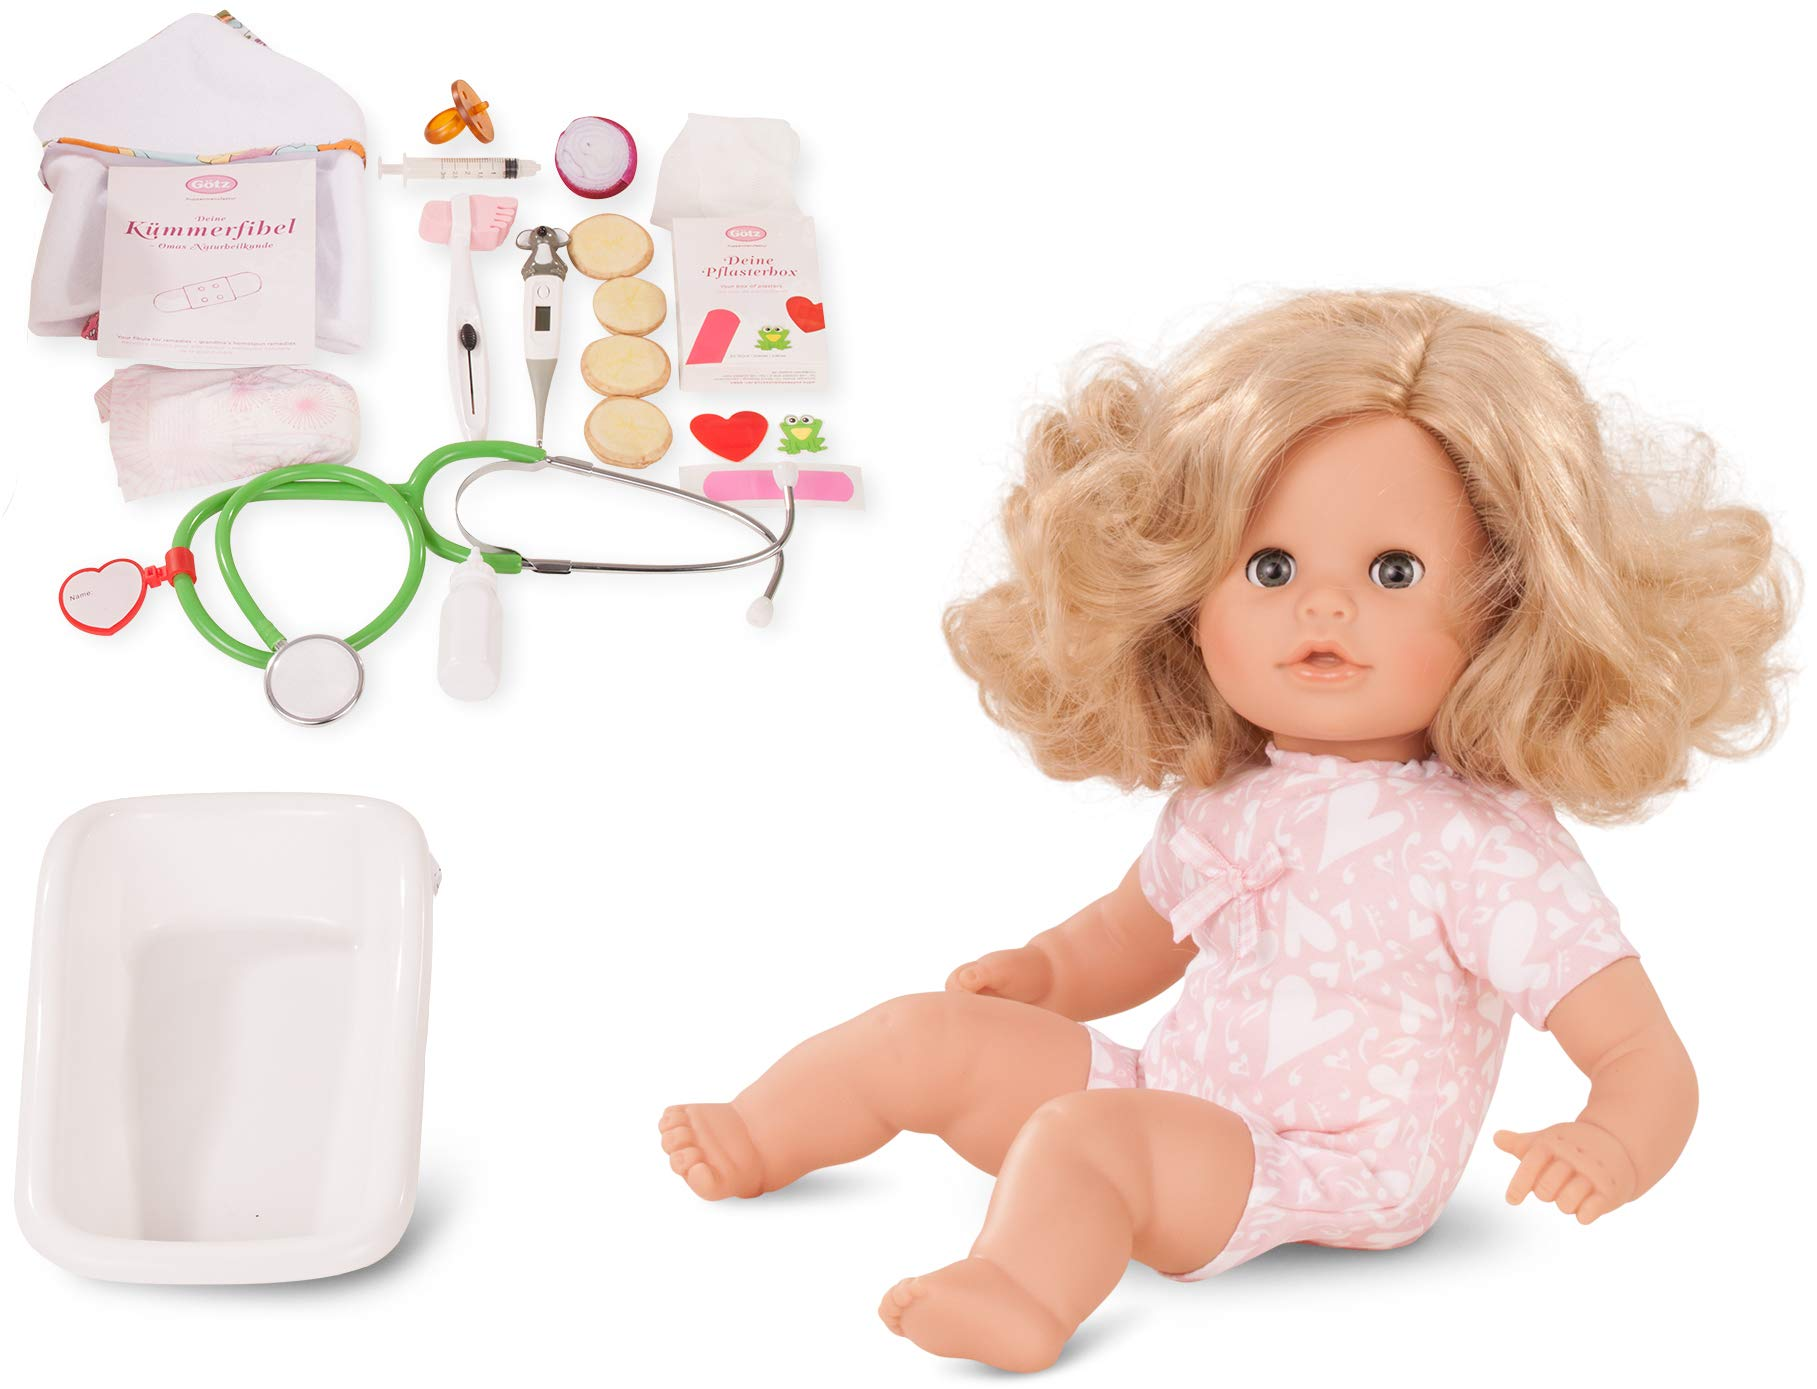 """Gotz Cosy Aquini Be A Doctor 13"""" Bath Time Baby Doll with Blonde Hair to Wash & Style, Quick Drying Soft Body, Bathtub & Accessories"""